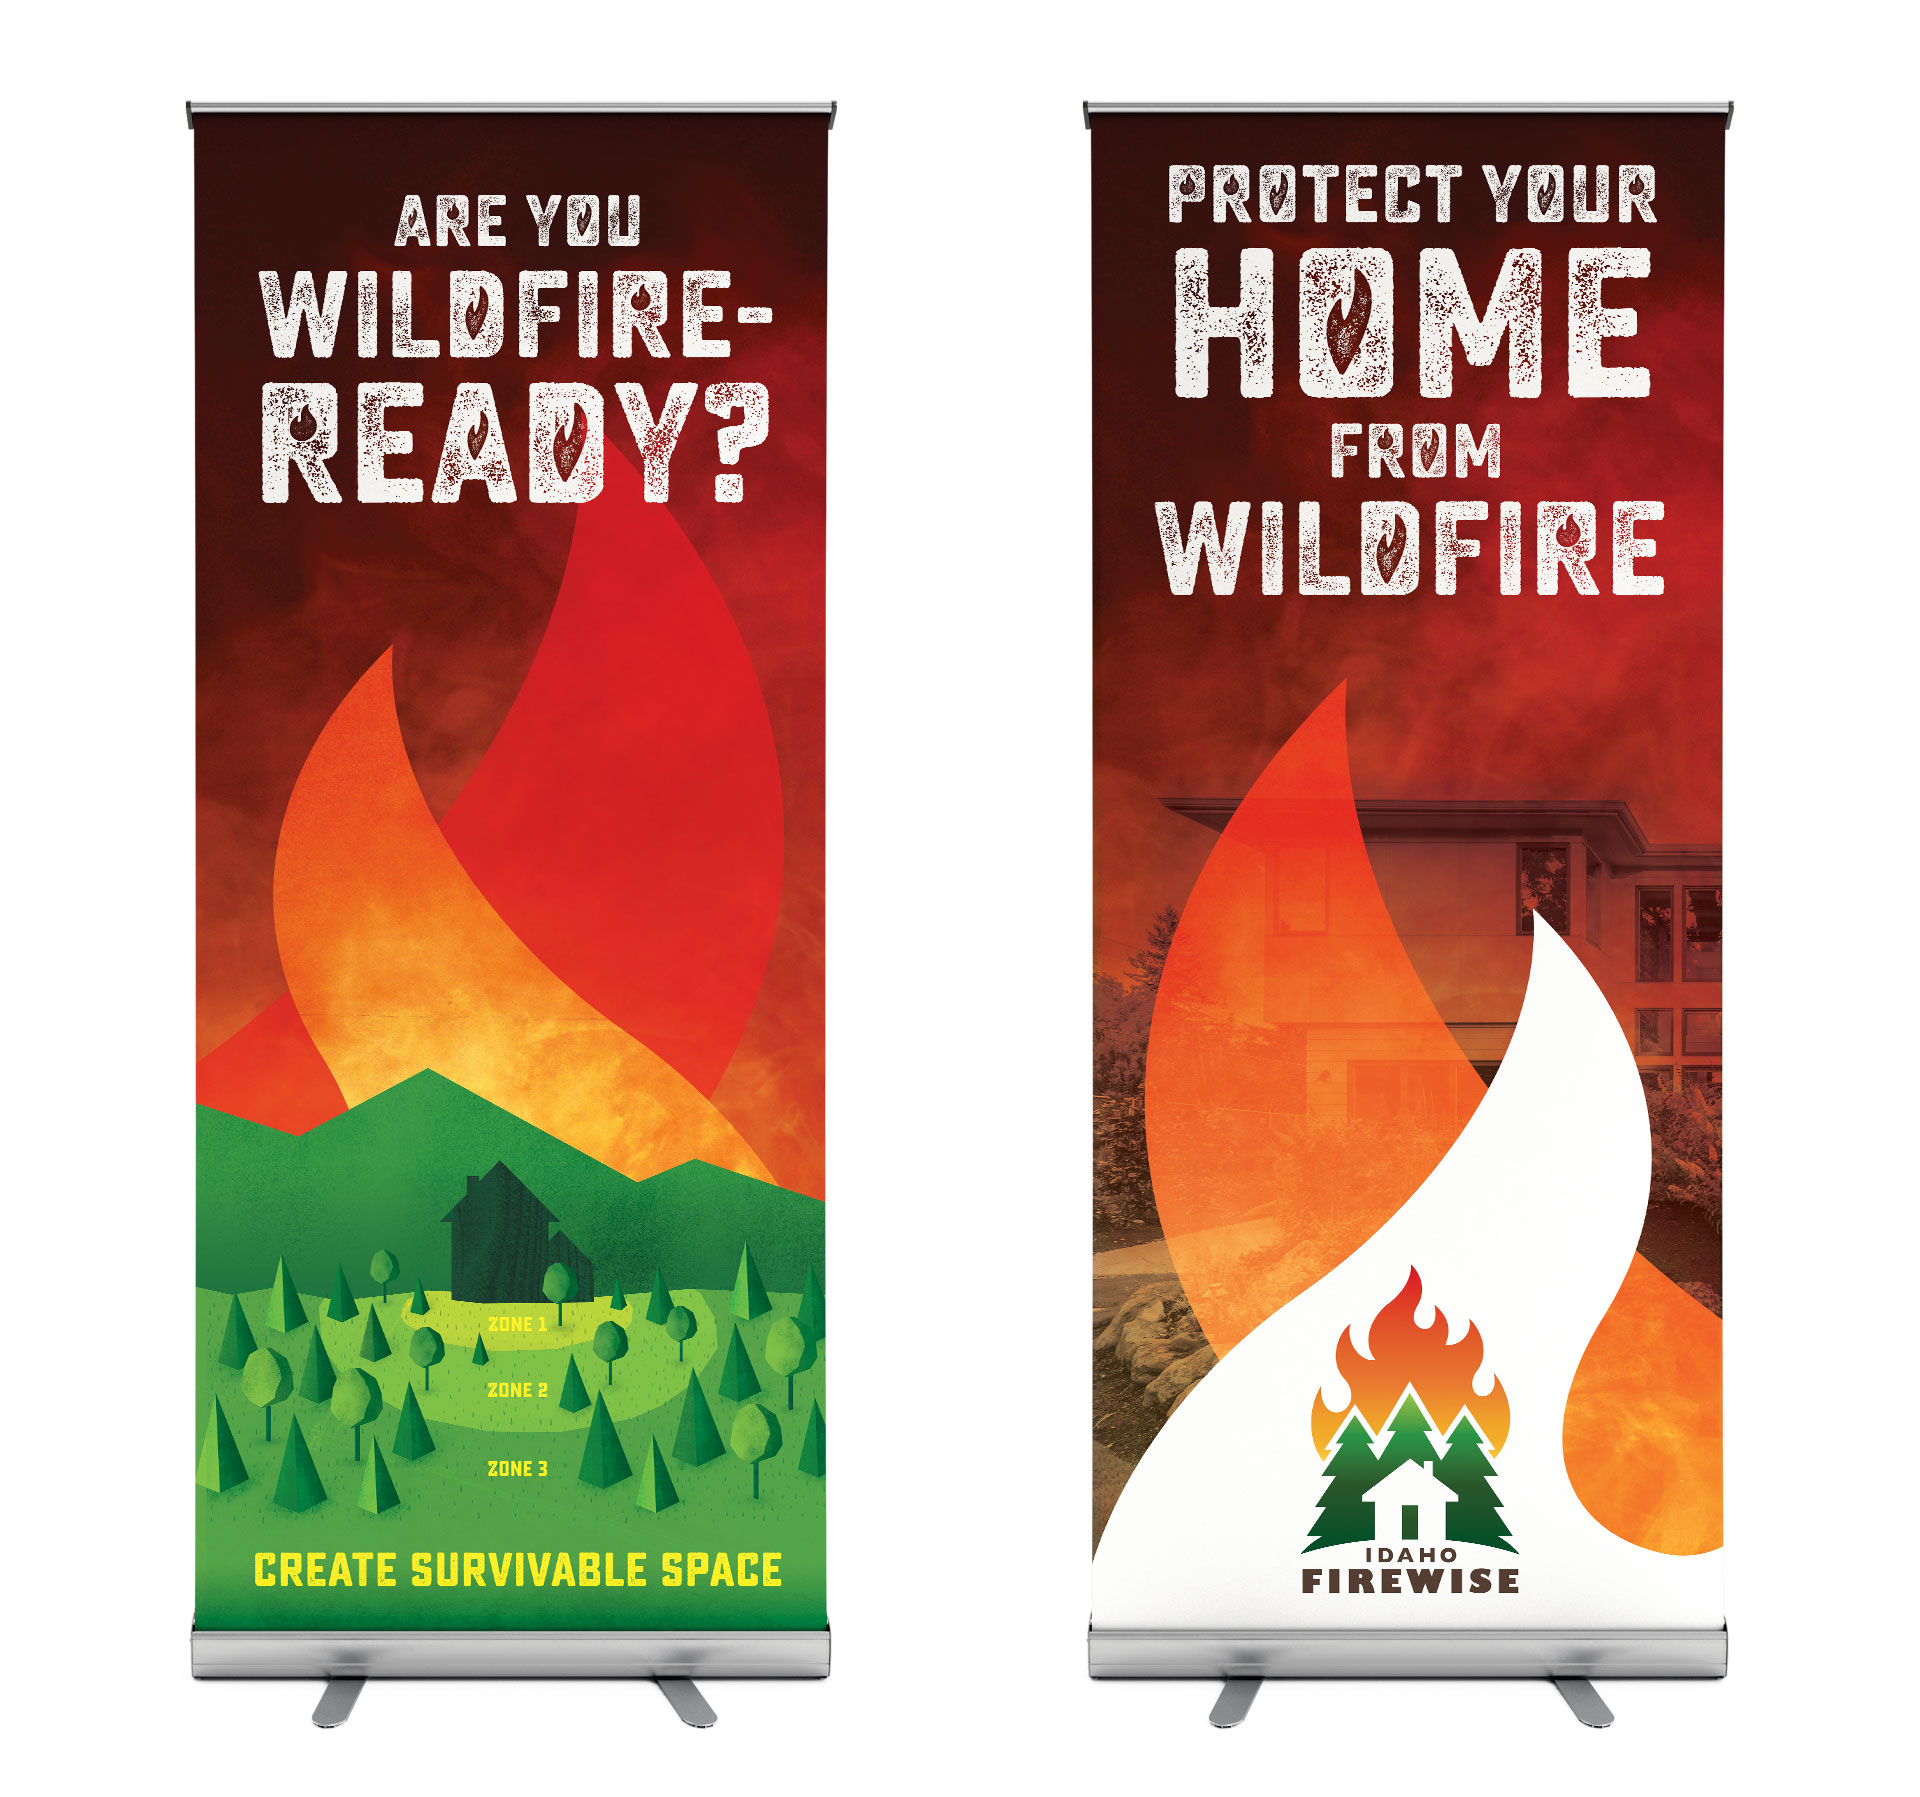 Idaho Firewise roll up banners